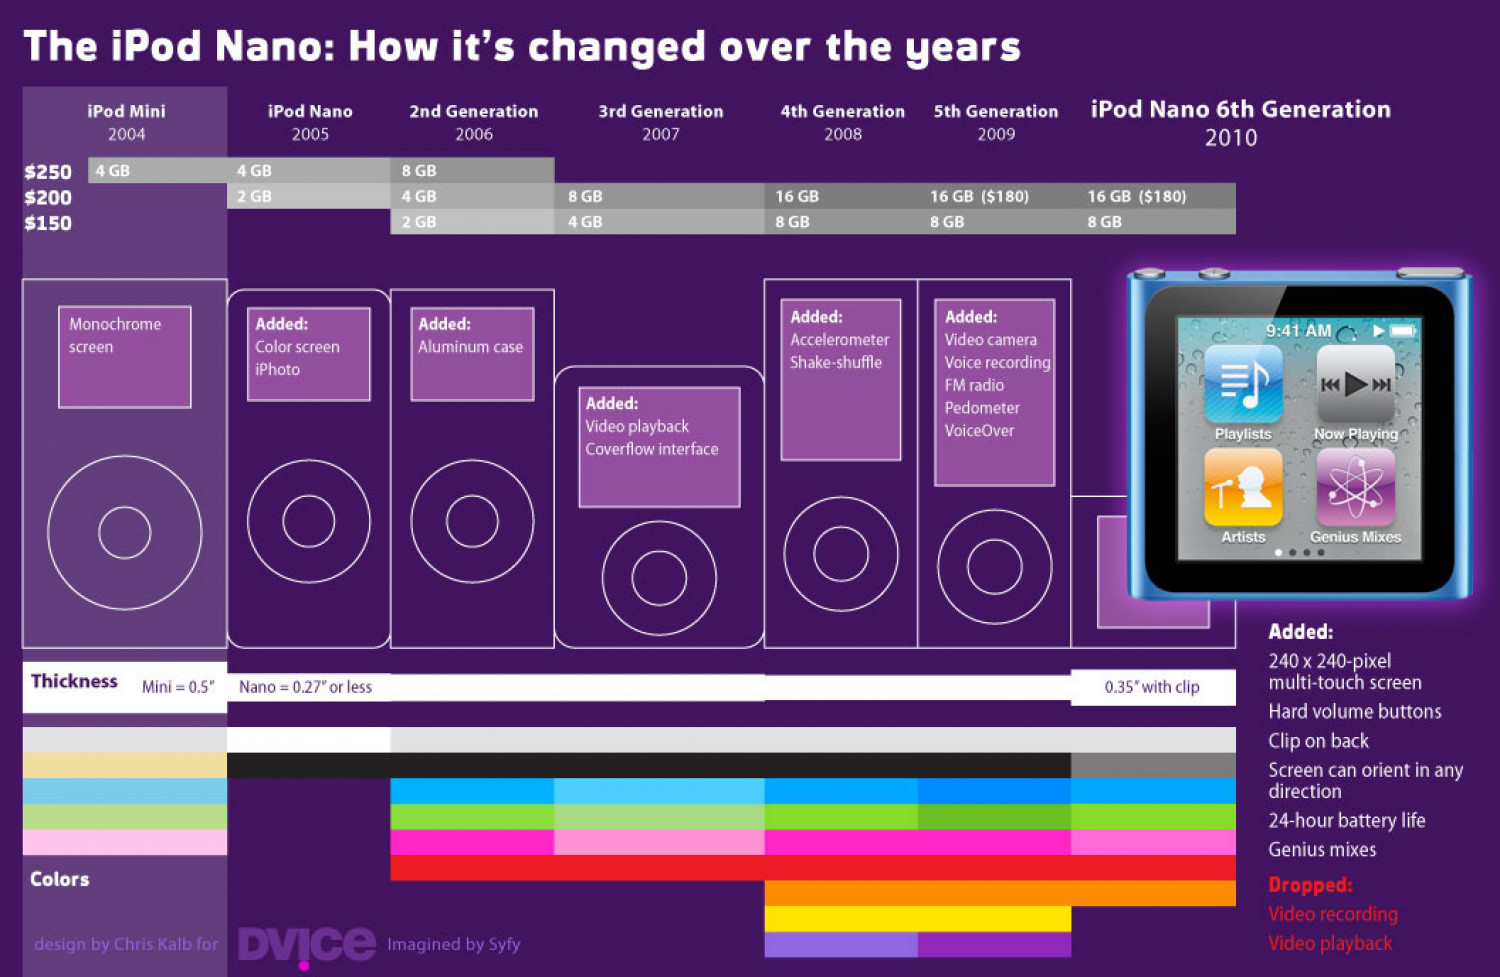 The iPod Nano: How it's changed over the years Infographic